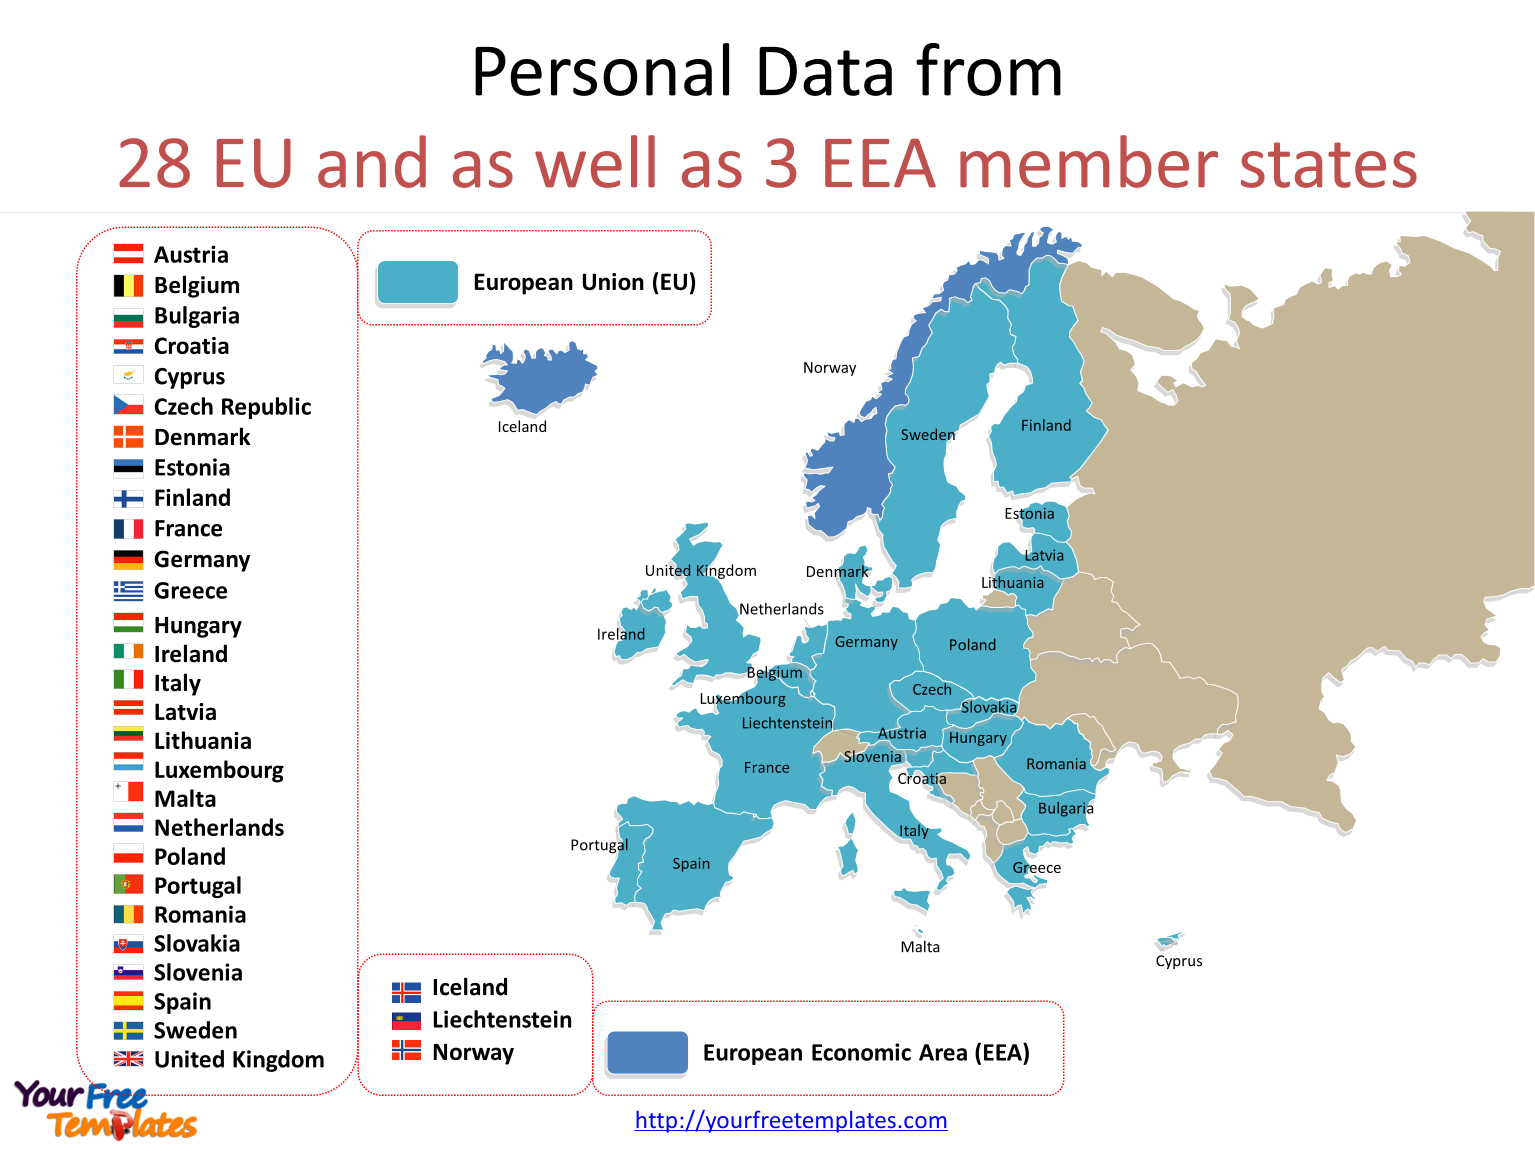 General Data Protection Regulation with national flag icons for 28 EU Countries on the General Data Protection Regulation and GDPR compliance PowerPoint templates